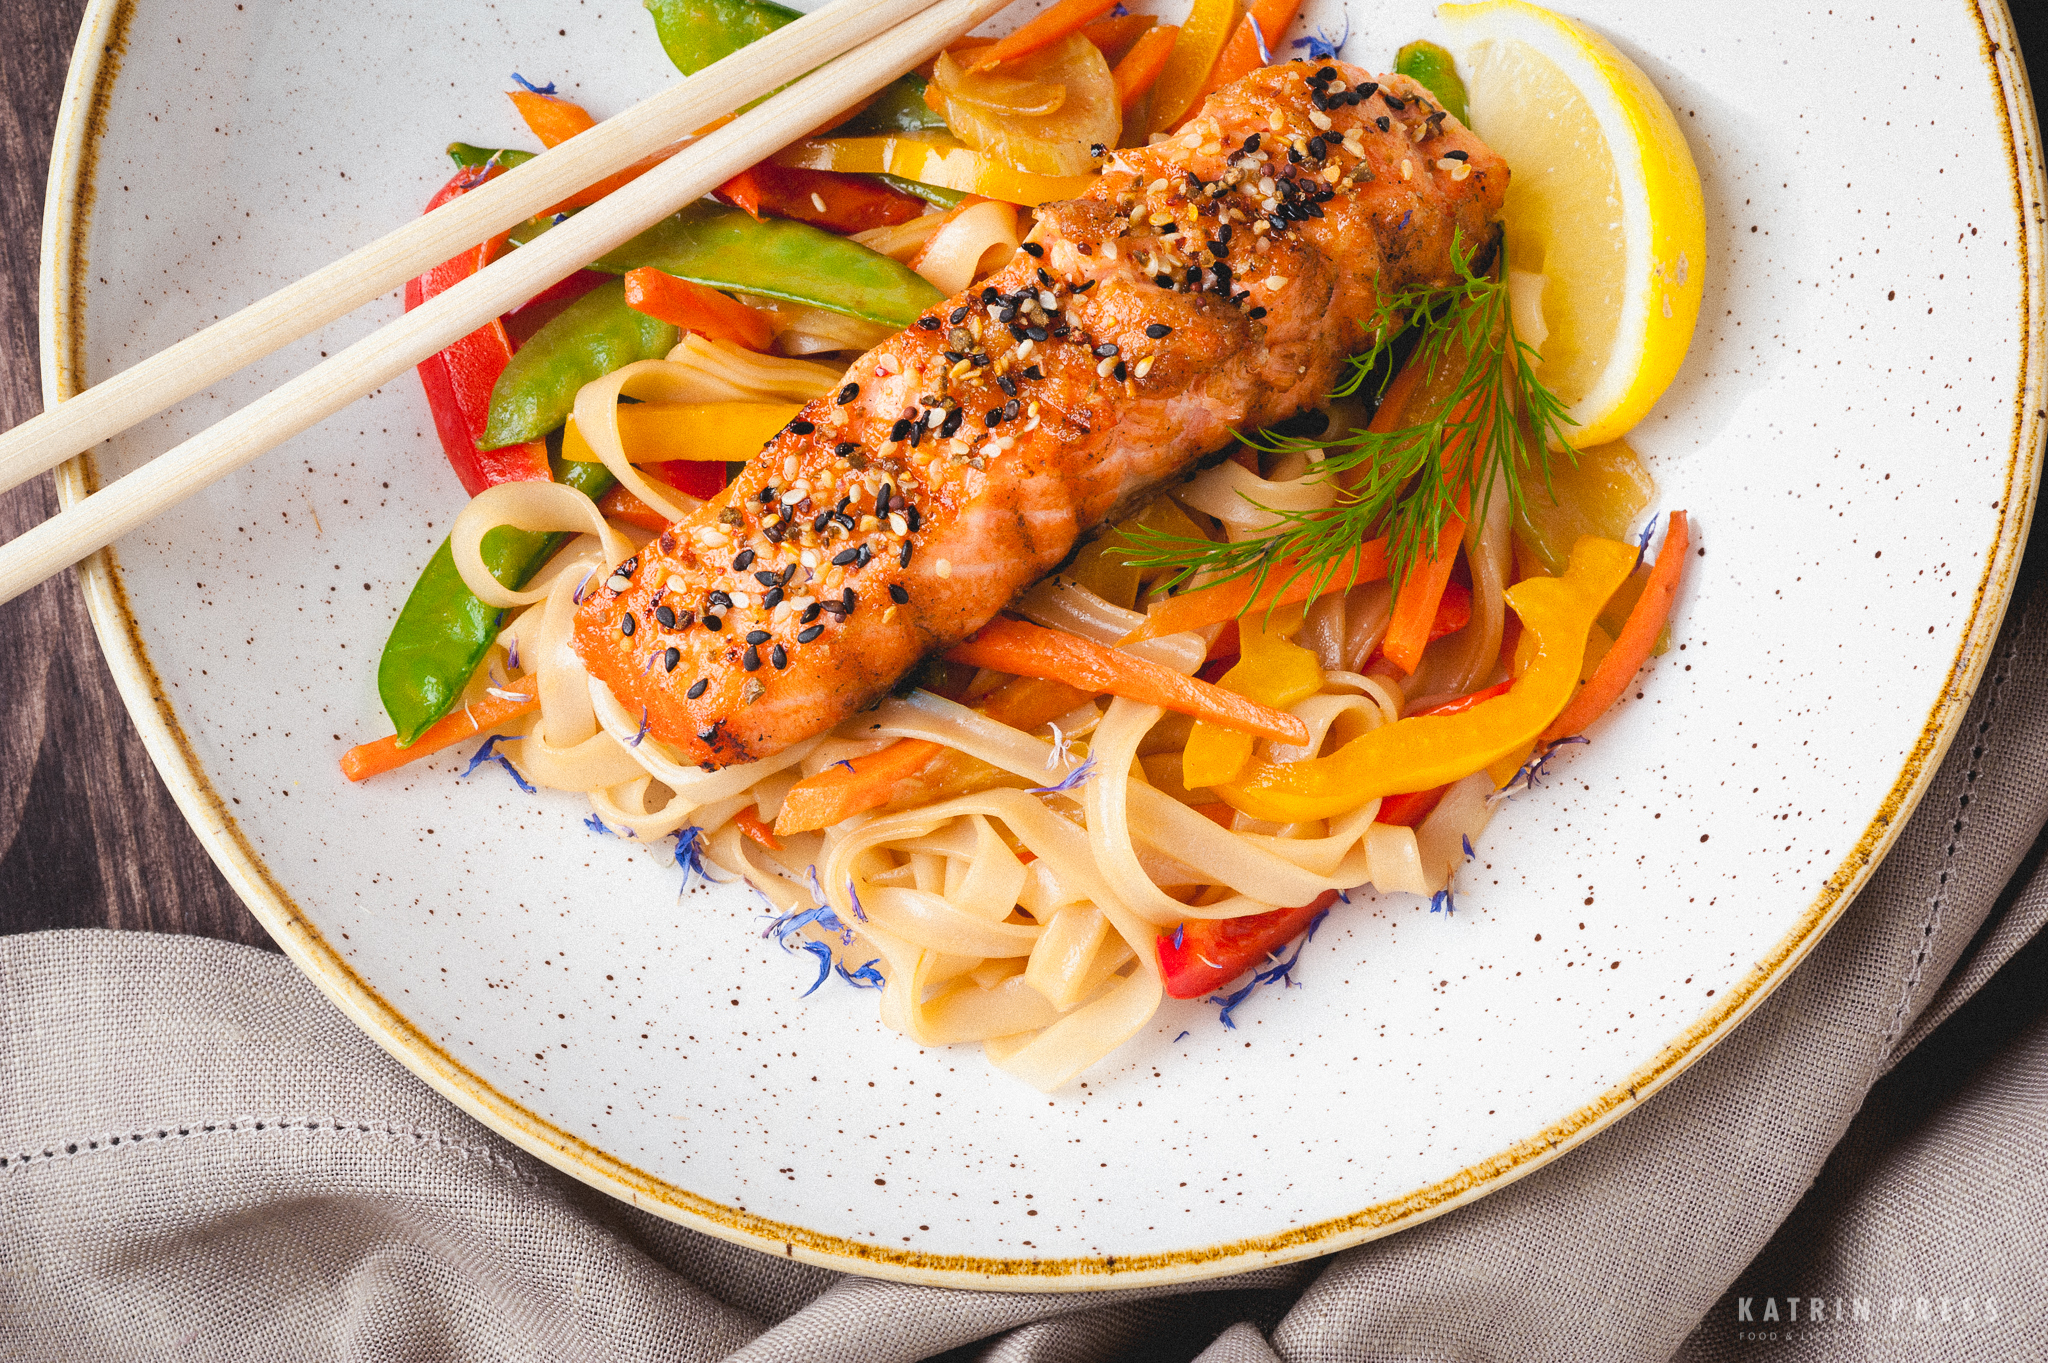 "ALT=""salmon, pasta, colorful, restaurant dish, katrin press, toidufoto"""